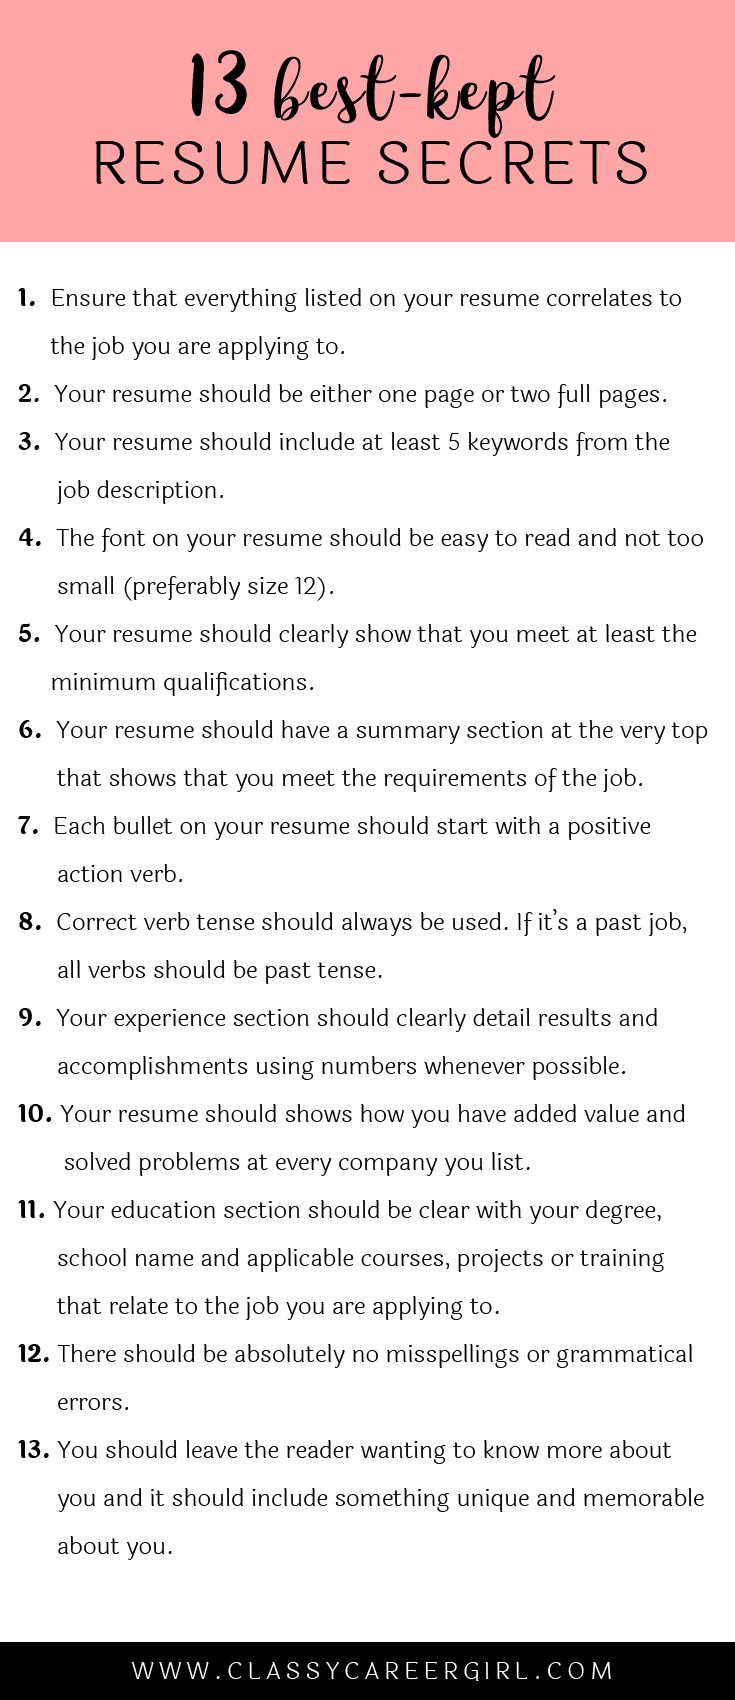 Opposenewapstandardsus  Prepossessing  Ideas About Resume On Pinterest  Cv Format Resume Cv And  With Hot Some Hiring Managers Will Toss Your Resume Out If You Dont Know These  With Adorable Resume File Name Also Best Words For Resume In Addition Resume Examples First Job And Sales Job Resume As Well As Build My Resume For Free Additionally Cable Technician Resume From Pinterestcom With Opposenewapstandardsus  Hot  Ideas About Resume On Pinterest  Cv Format Resume Cv And  With Adorable Some Hiring Managers Will Toss Your Resume Out If You Dont Know These  And Prepossessing Resume File Name Also Best Words For Resume In Addition Resume Examples First Job From Pinterestcom